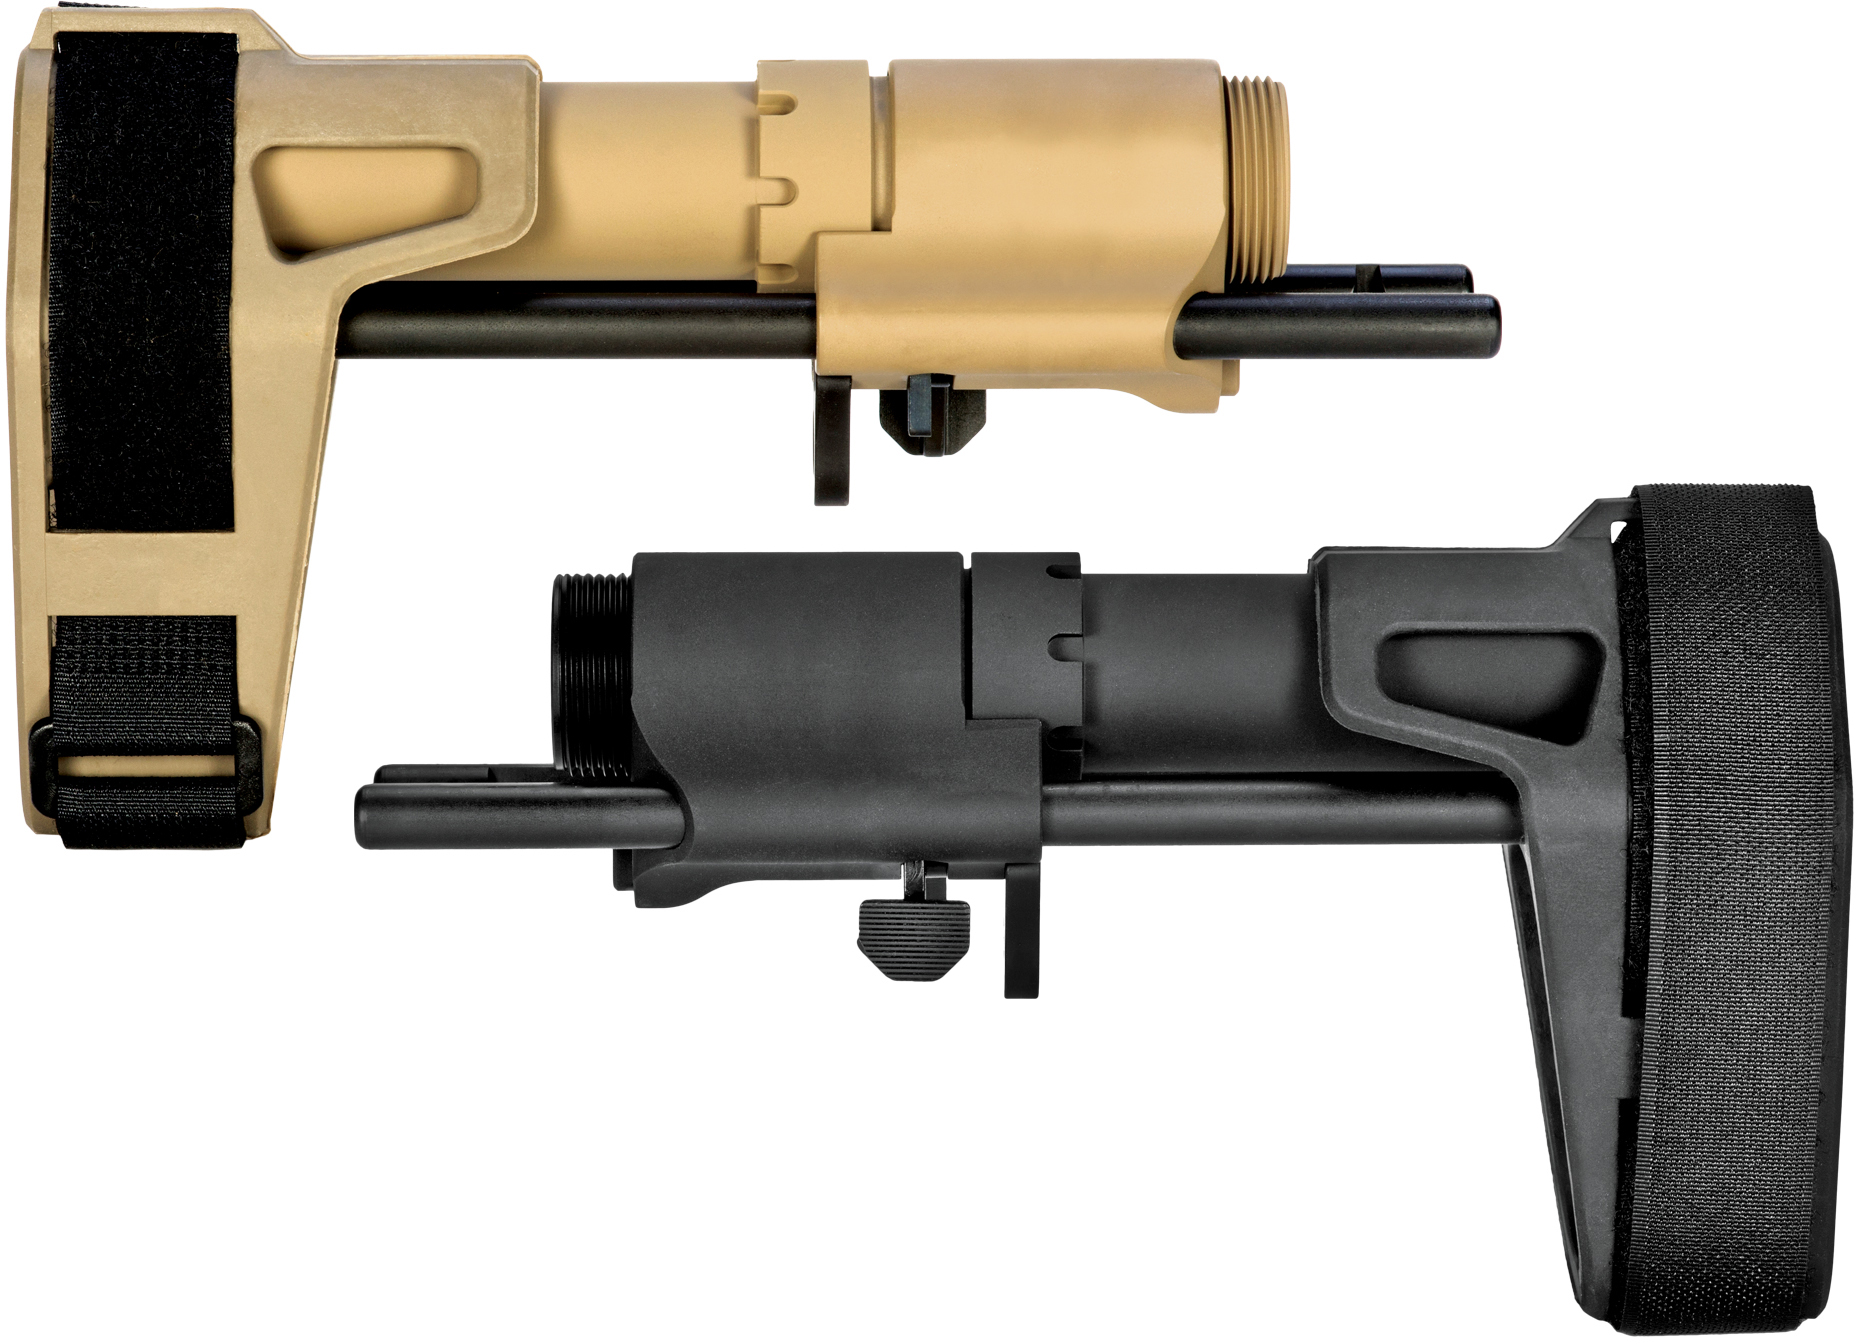 SB Tactical SBPDW Pistol Stabilizing Brace for Mil-spec AR-15 Receivers